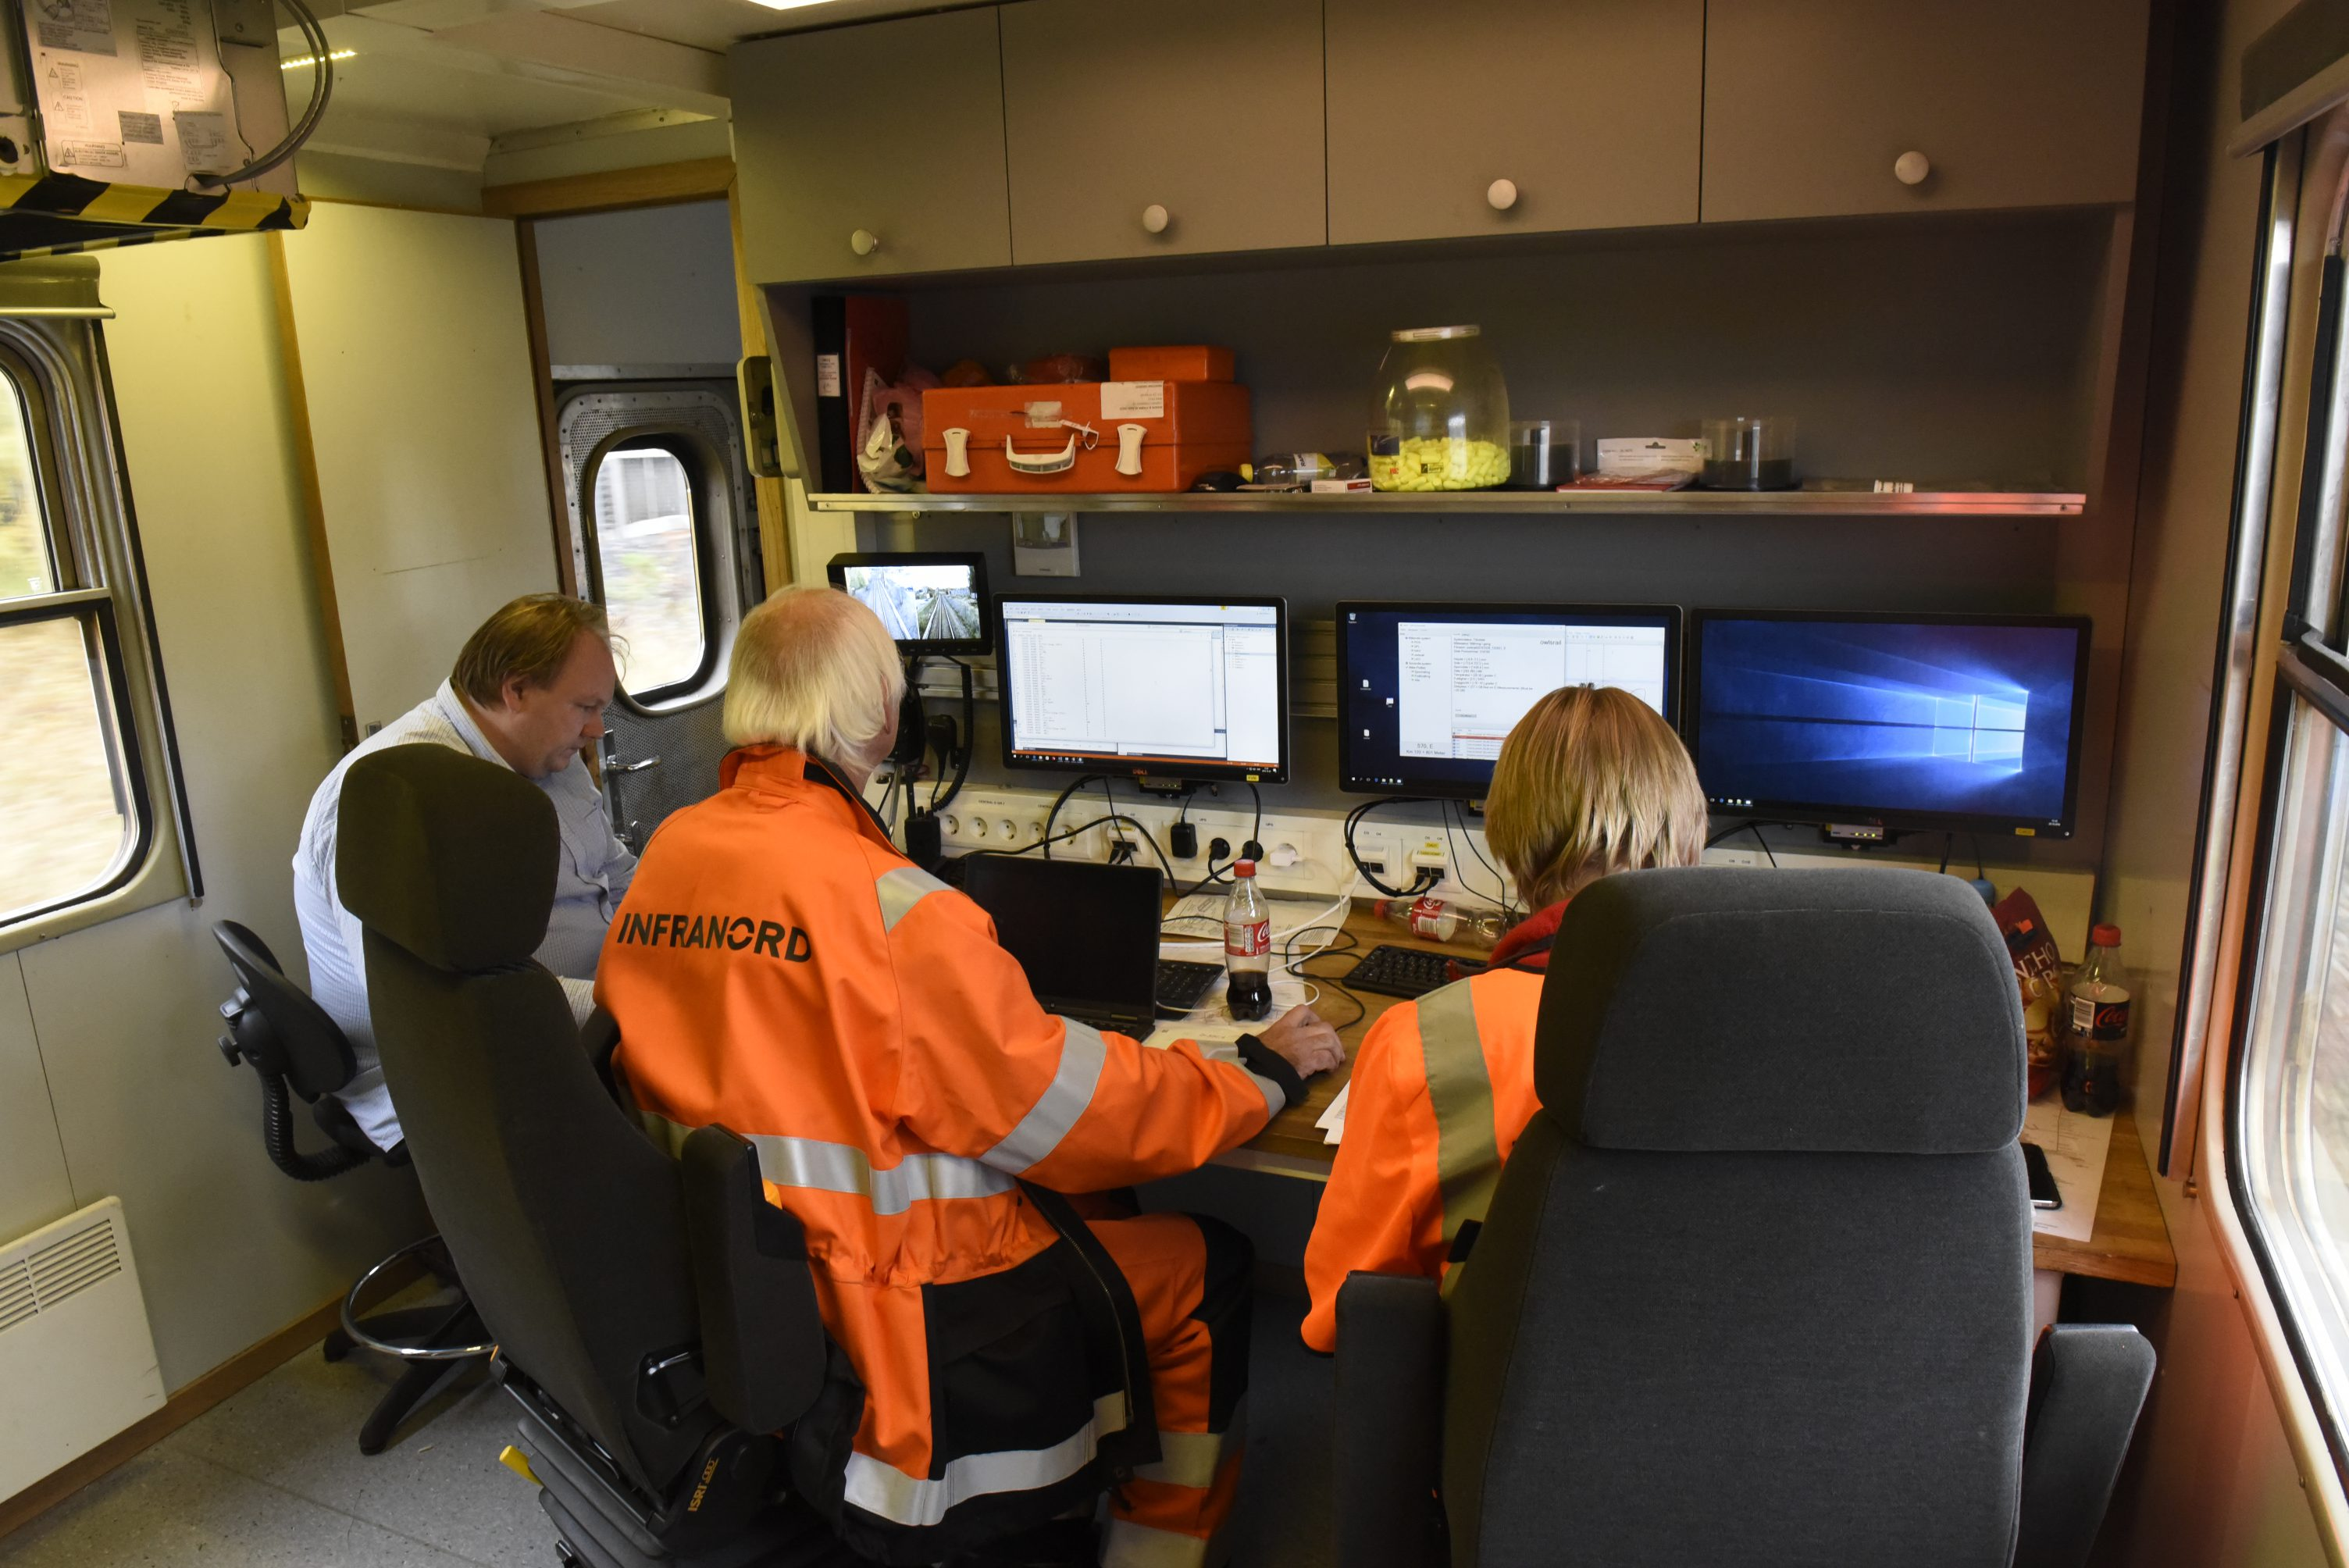 The control room on the JBV SMV3 Geometry Car. It is our Jesper Engberg on left and Infranord personnel on right. Infranord is responsible for some of the geometry systems on the new SMV3.